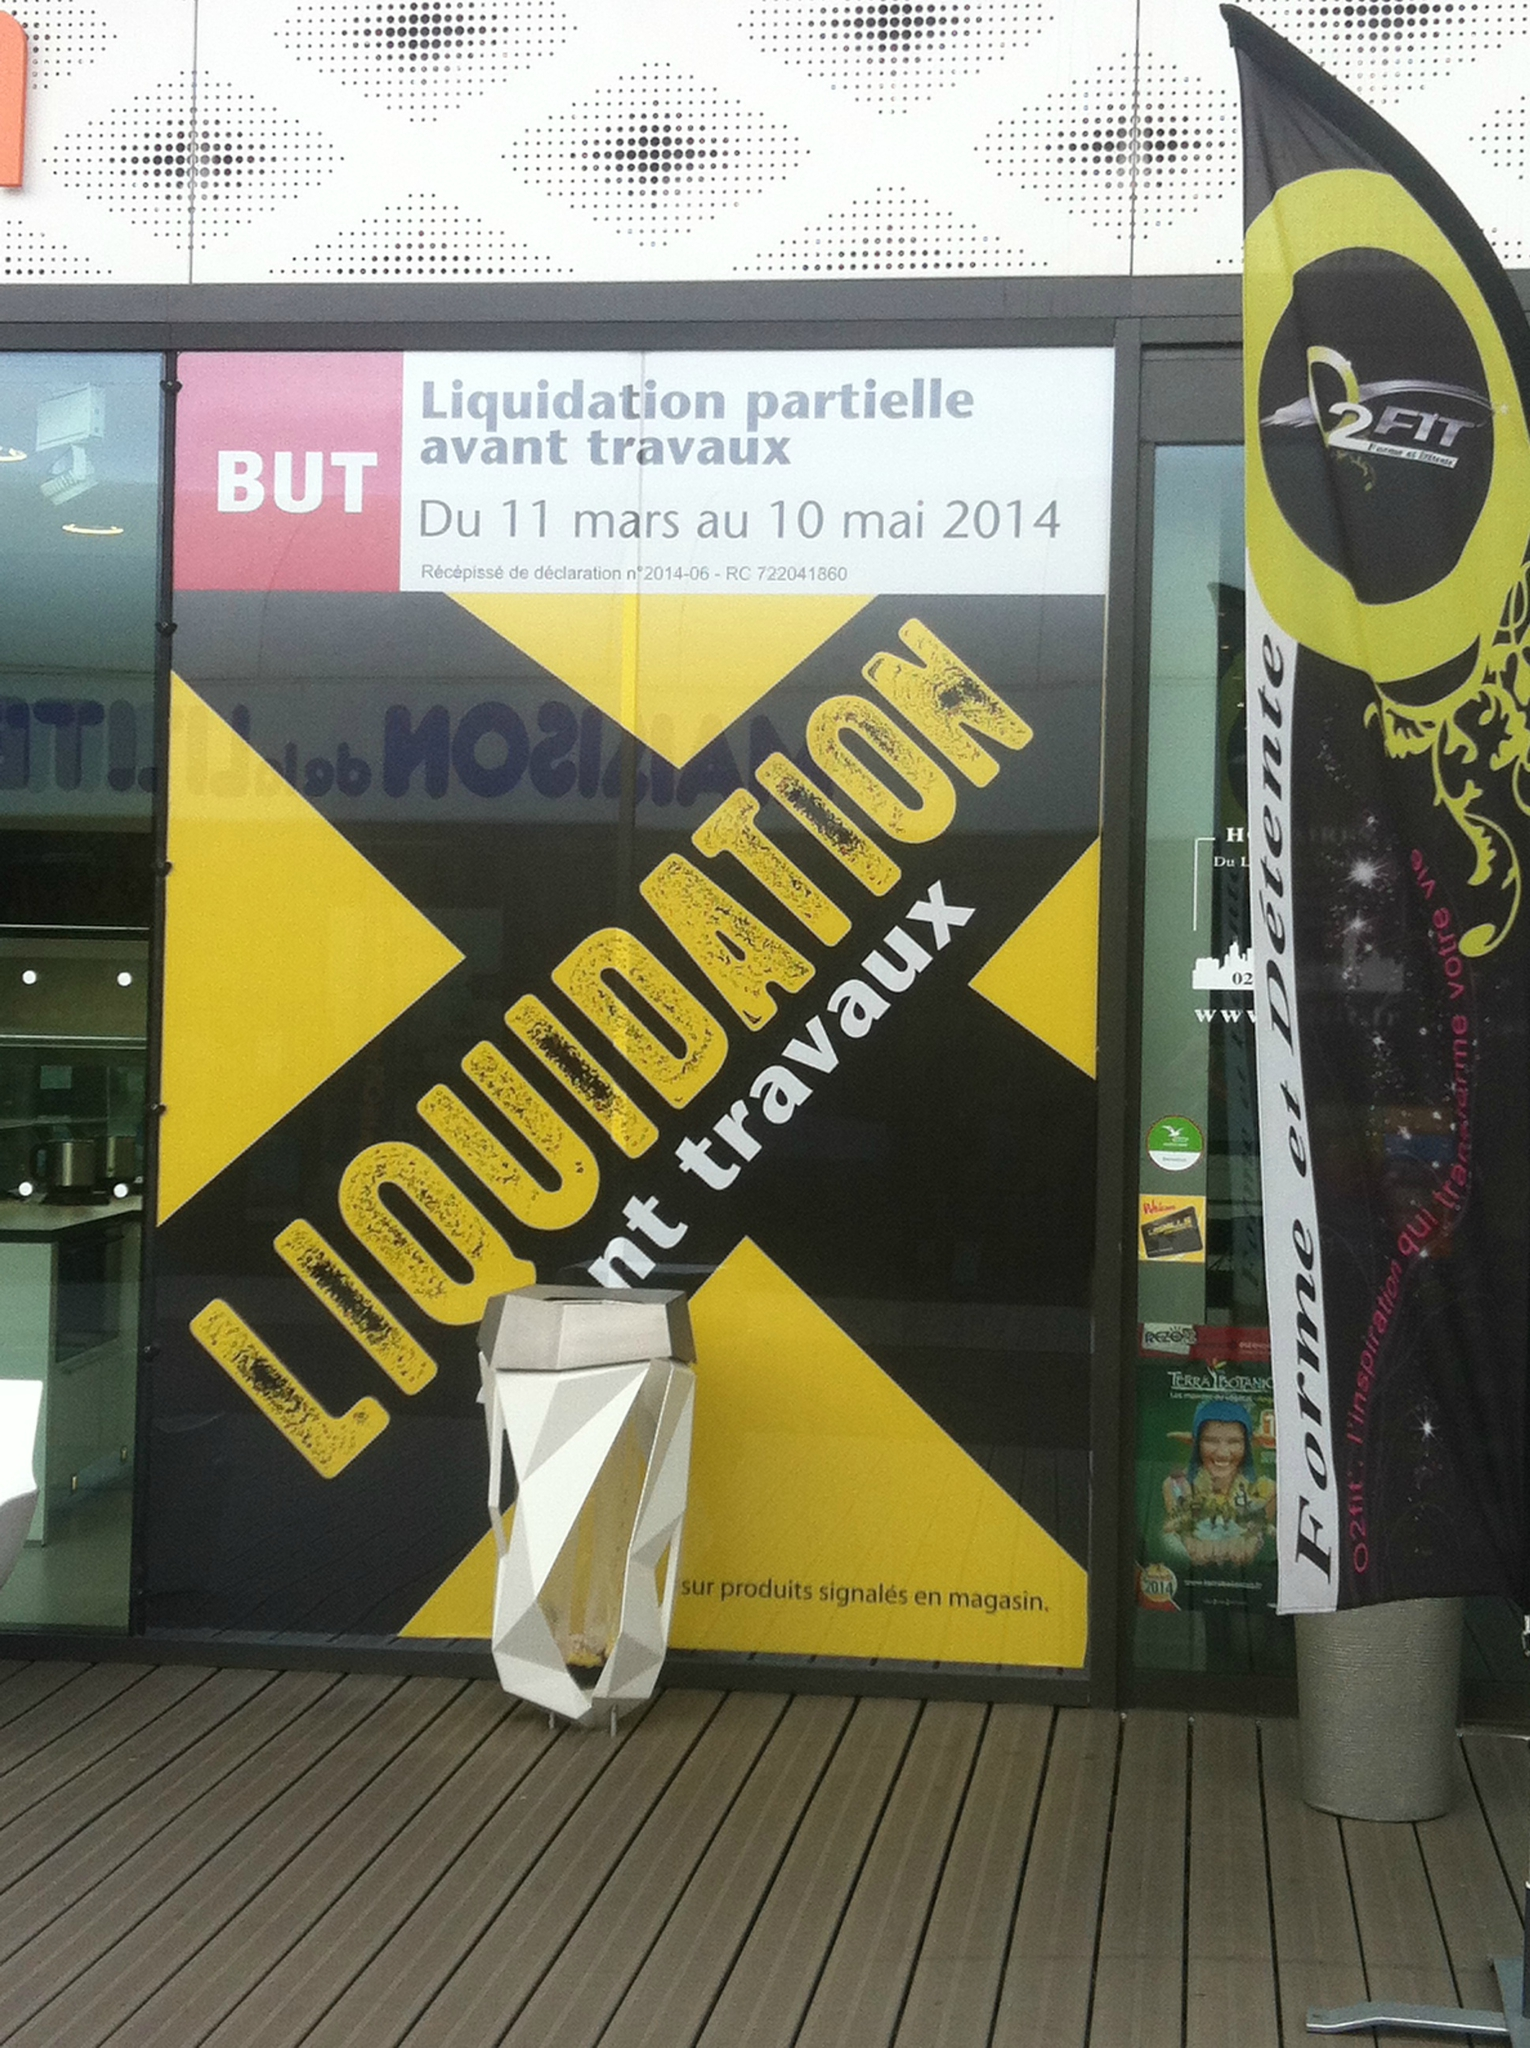 liquidation partielle chez but angers jusqu 39 au 10 mai 2014 cathypety. Black Bedroom Furniture Sets. Home Design Ideas